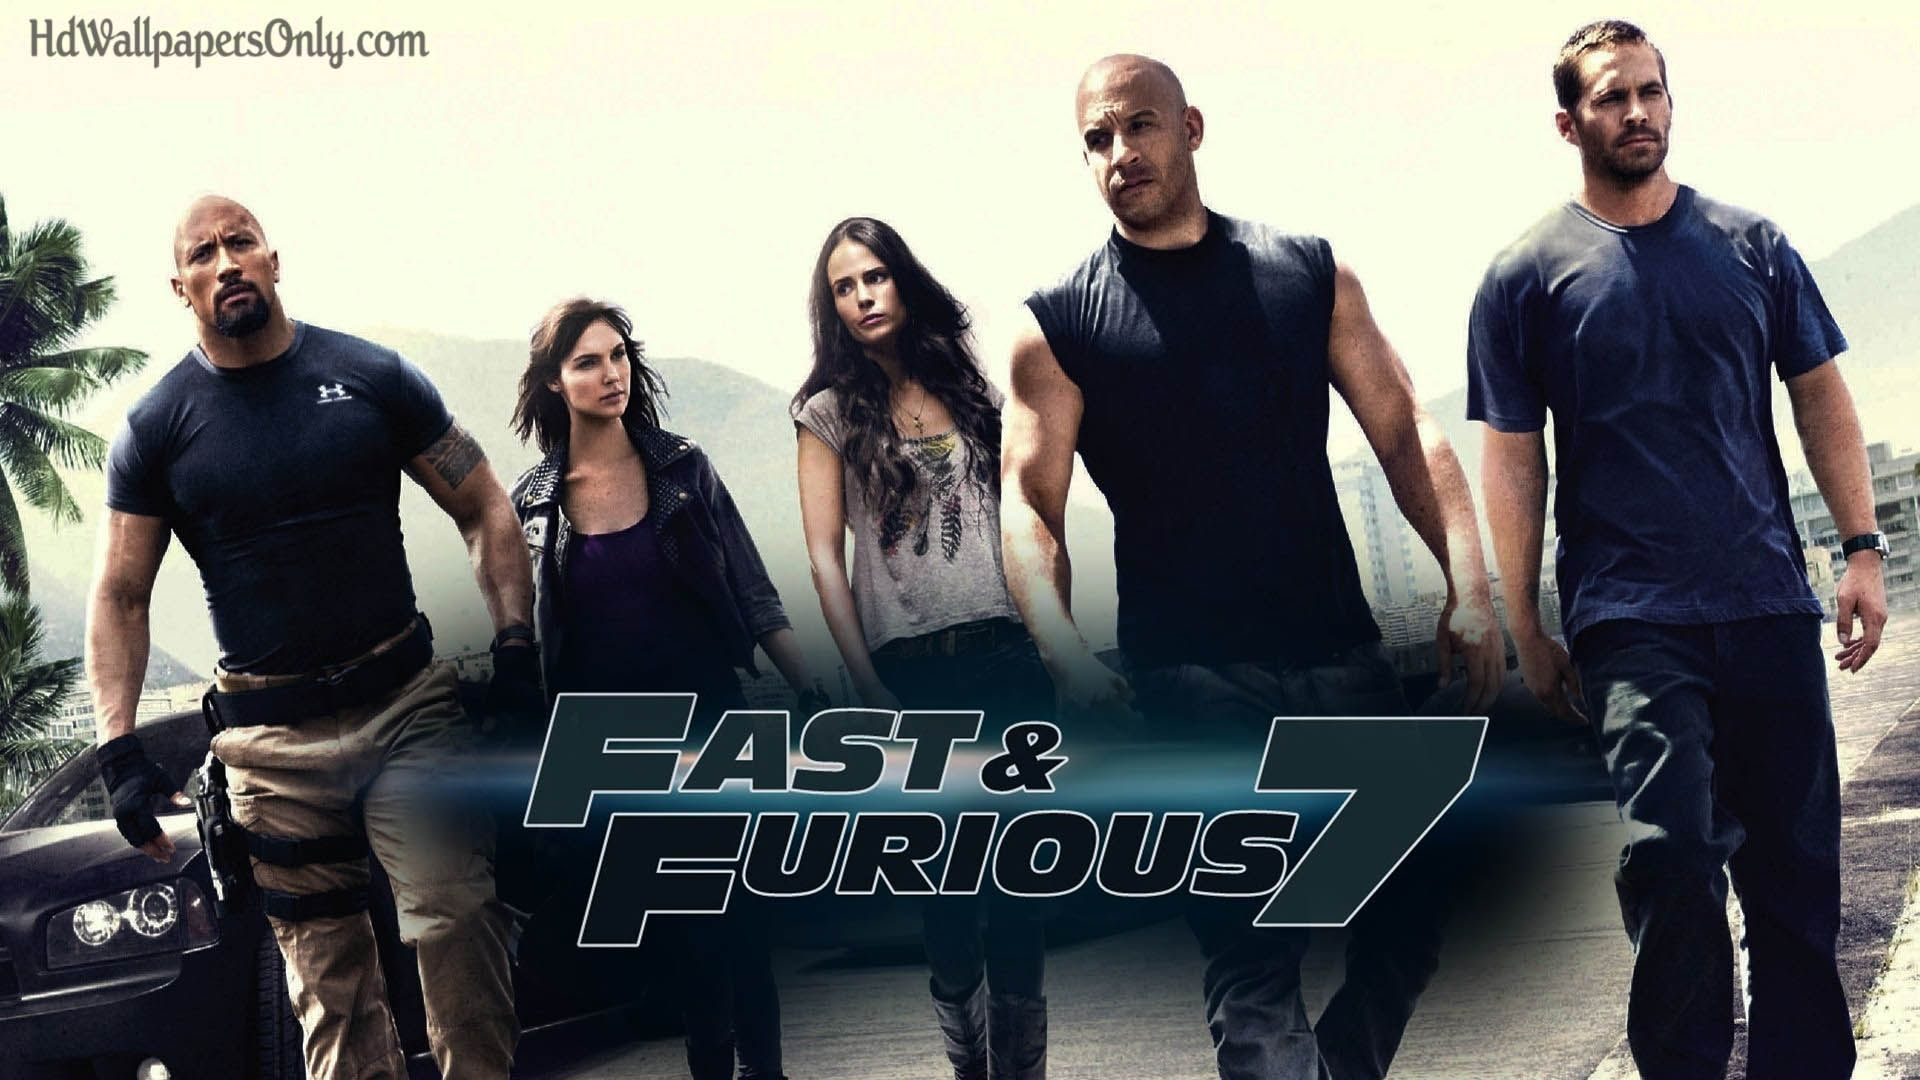 Http Knarchive Com Fast Furious 7 Full Movie Html Fast Furious 7